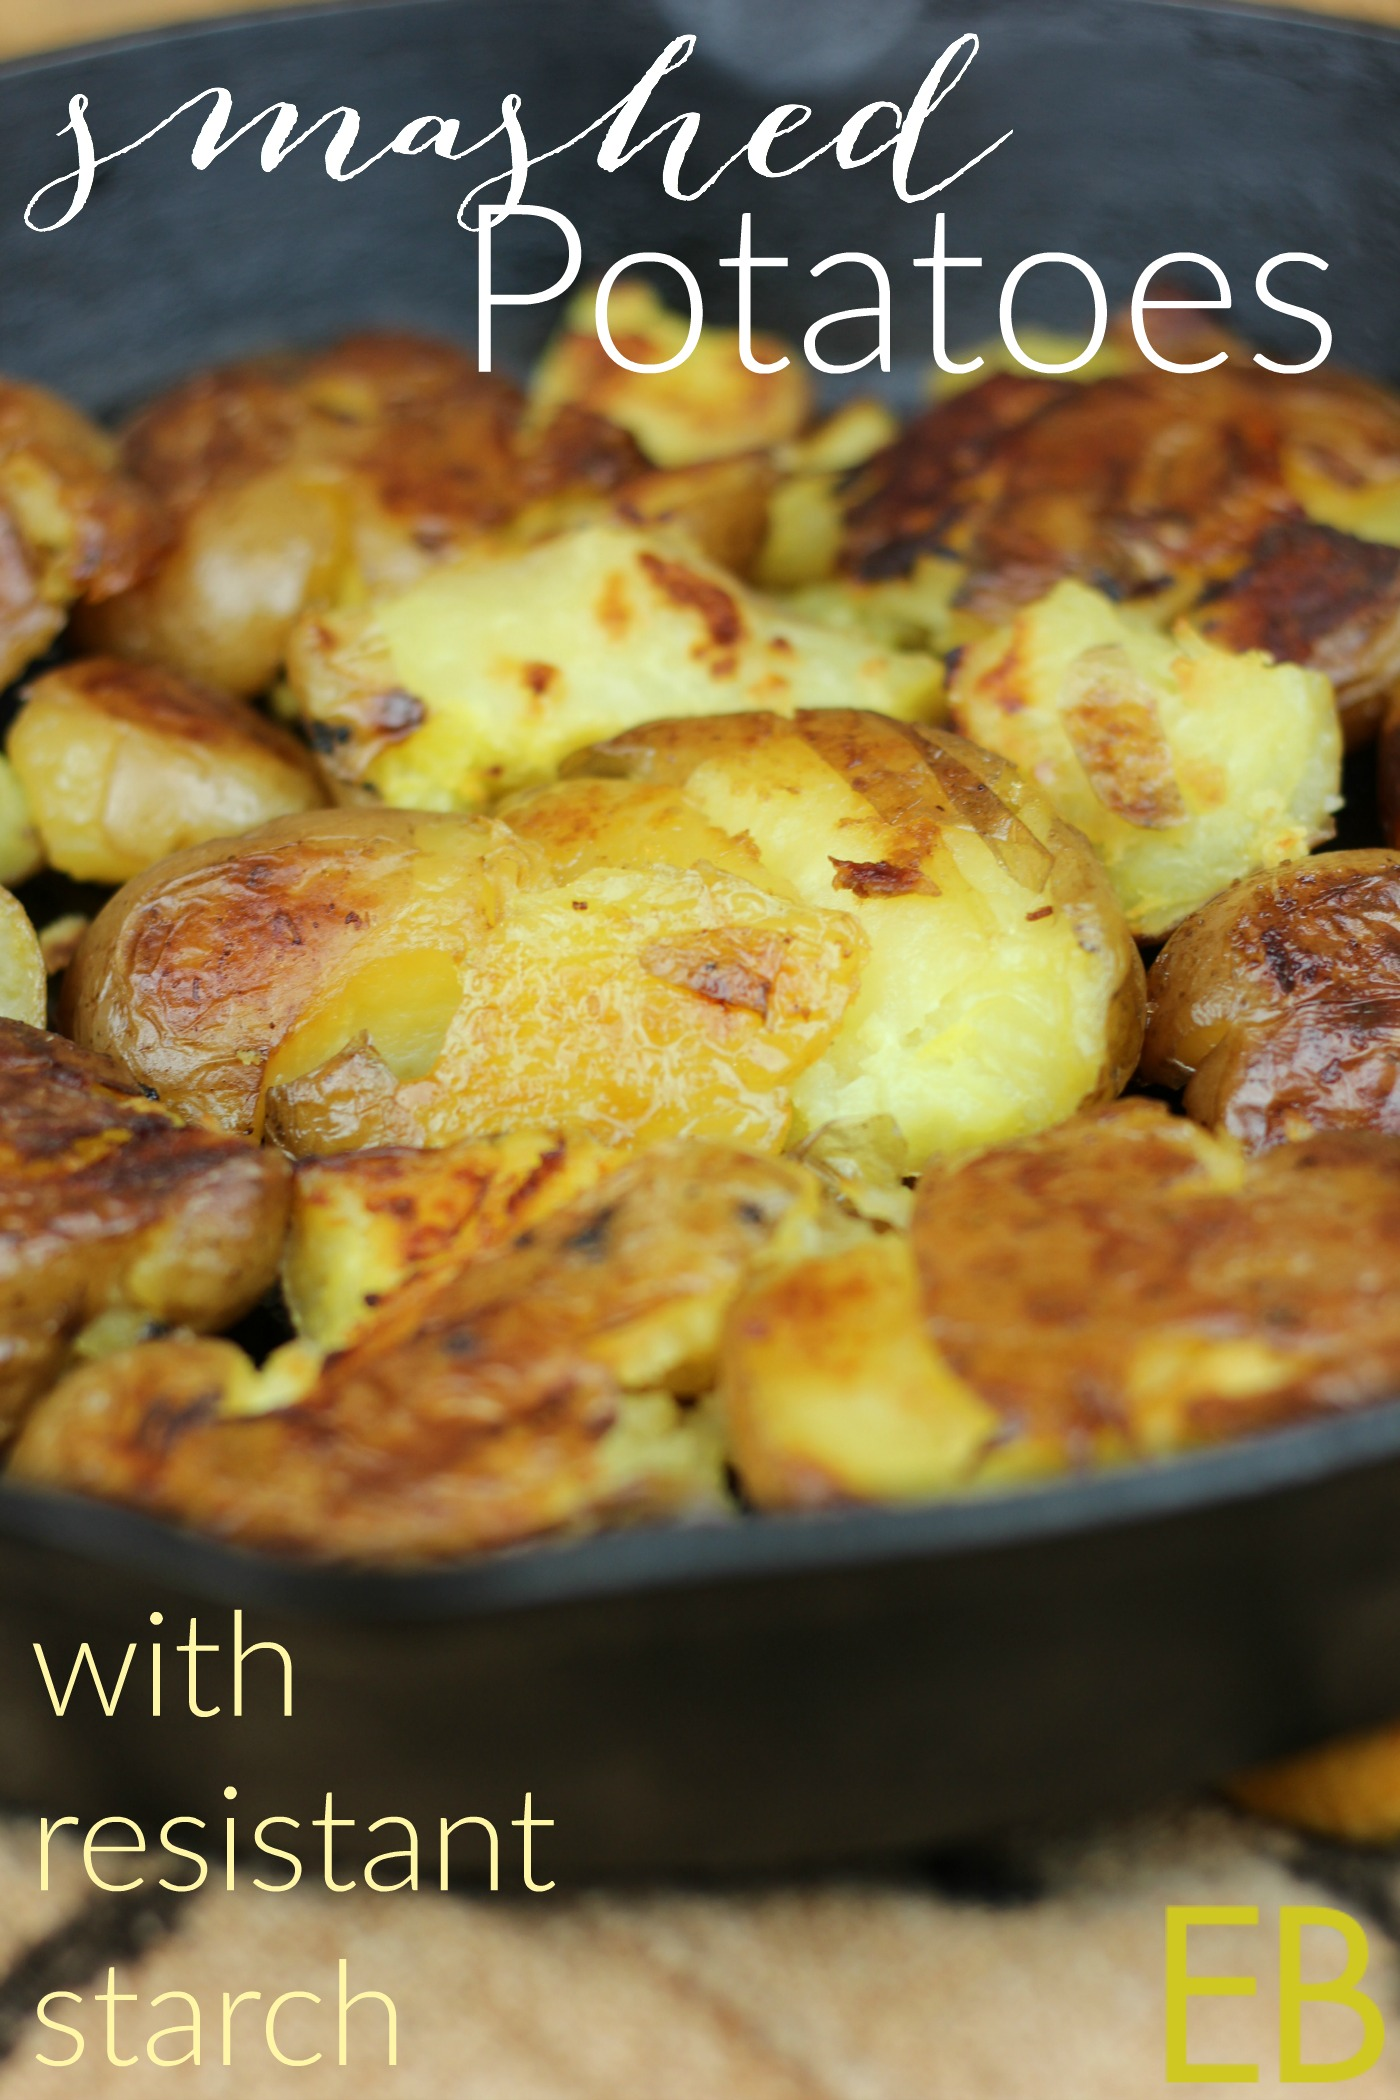 cast iron skillet with golden smashed potatoes inside that are paleo and whole30